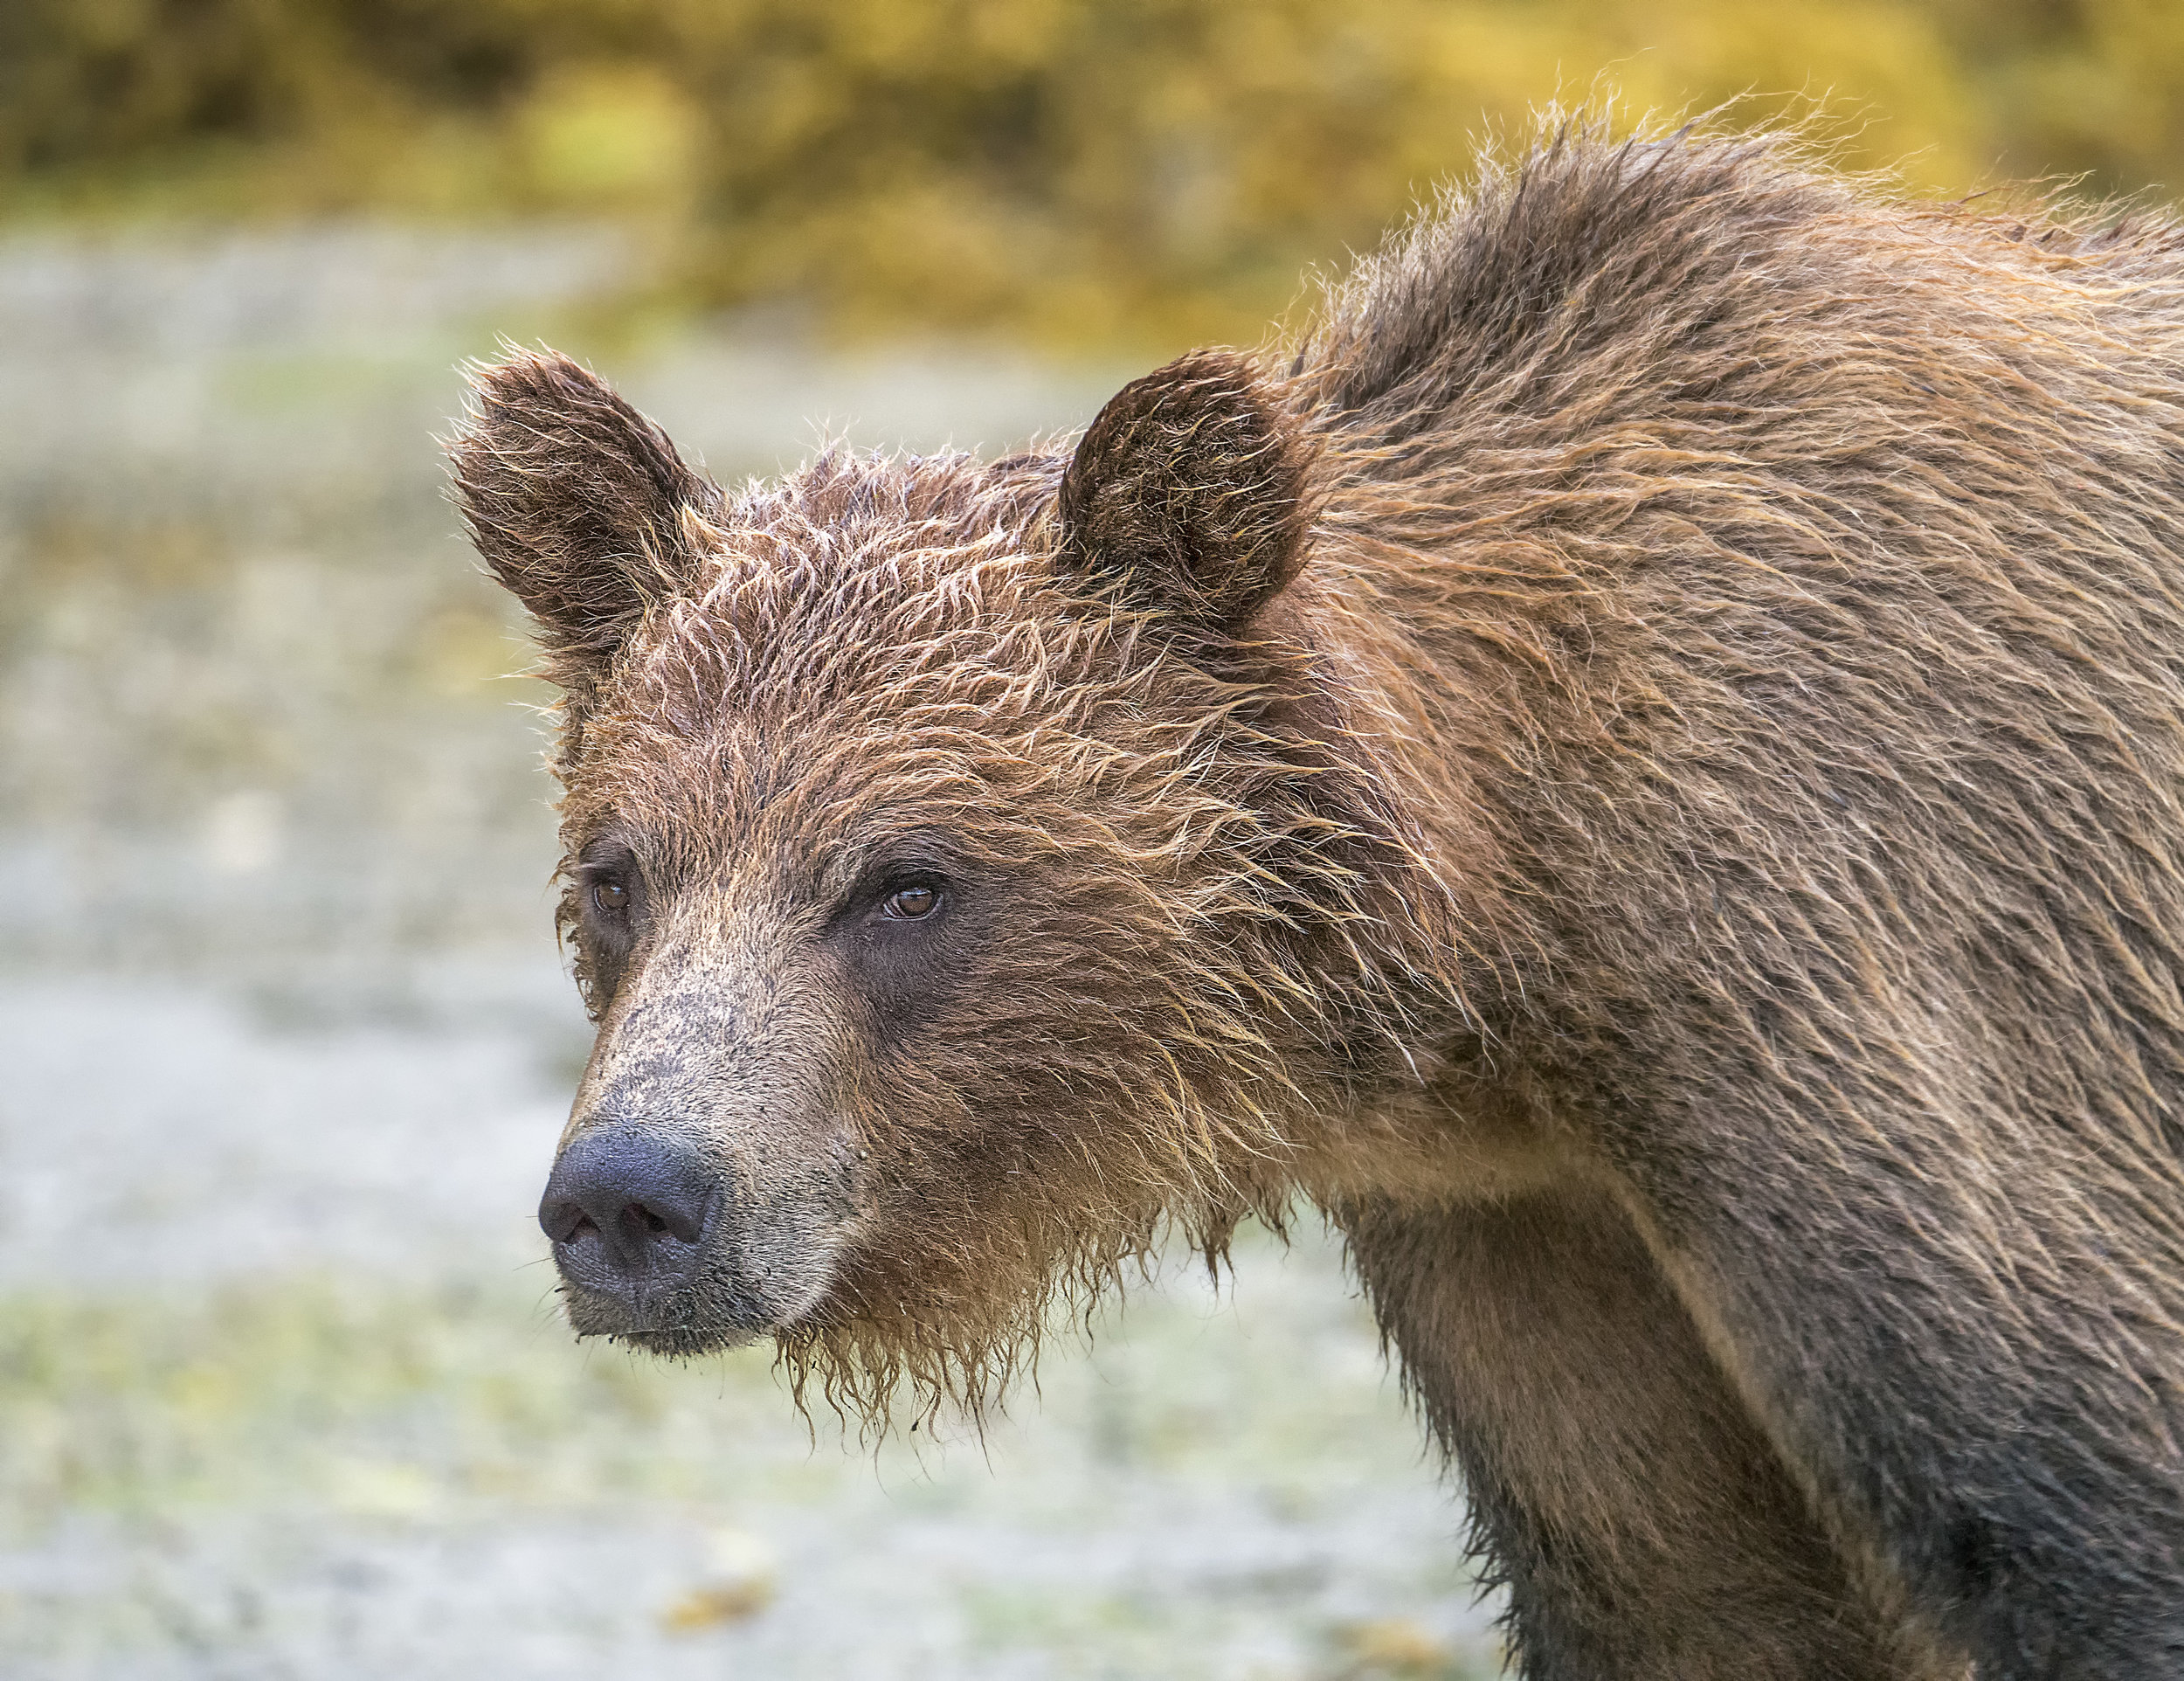 Grizzly bear BC head shot G85.jpg